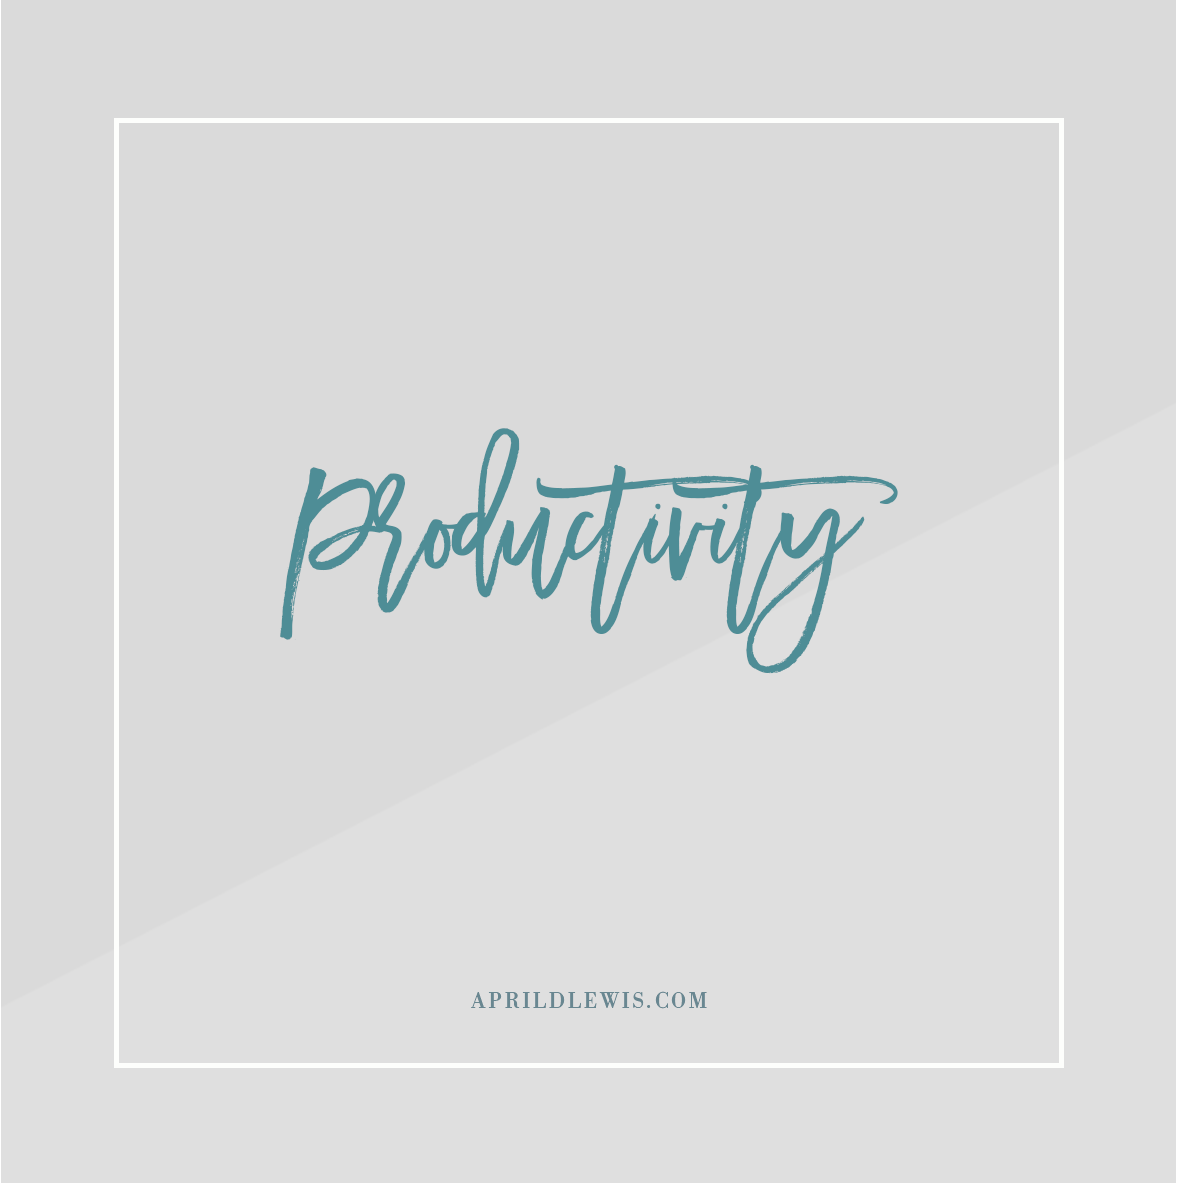 Click here for productivity articles